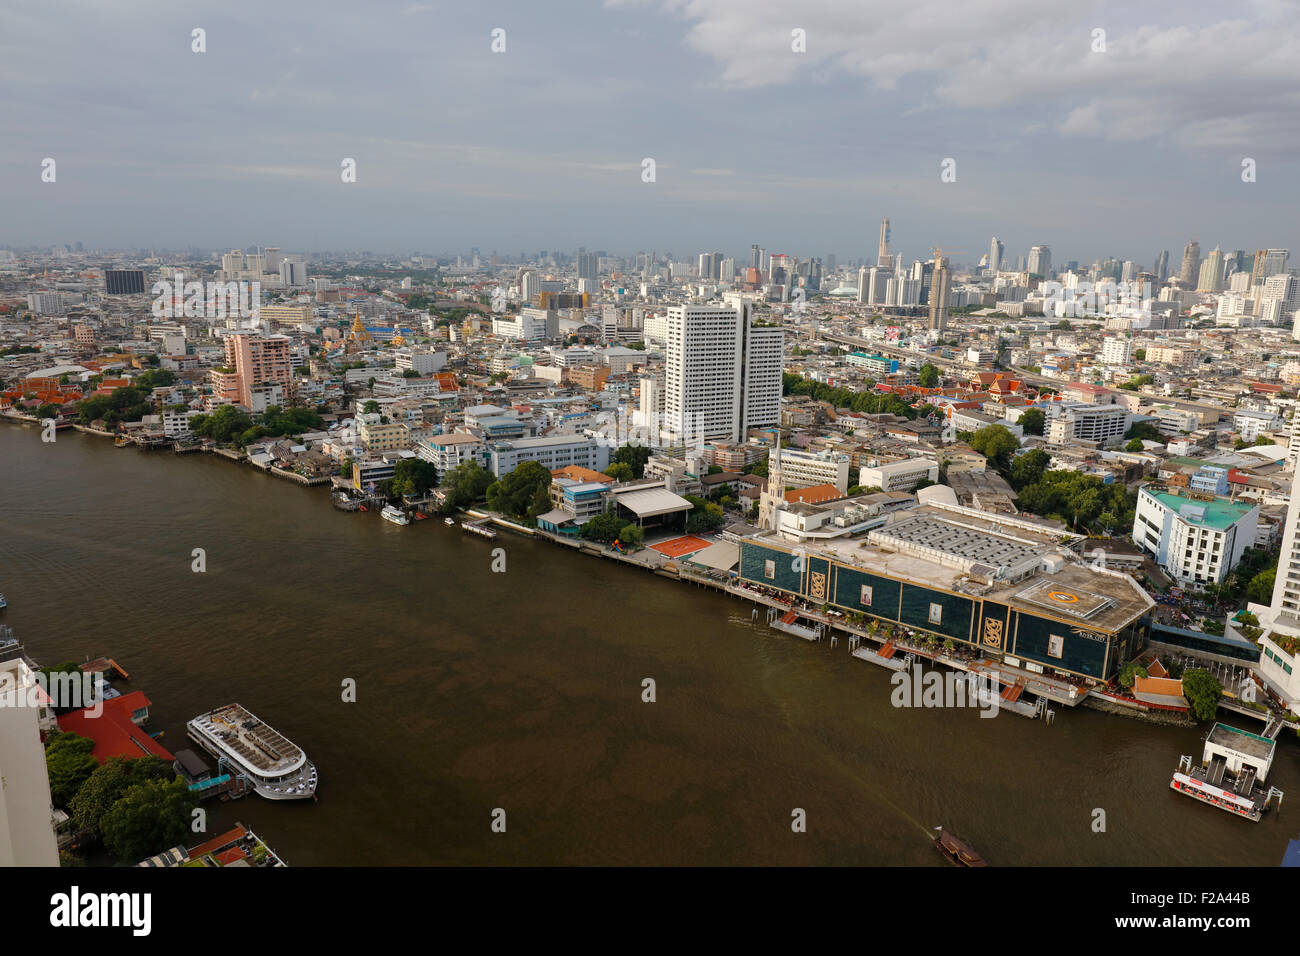 Panorama of the city center with Chao Phraya River, Bangkok, Thailand - Stock Image